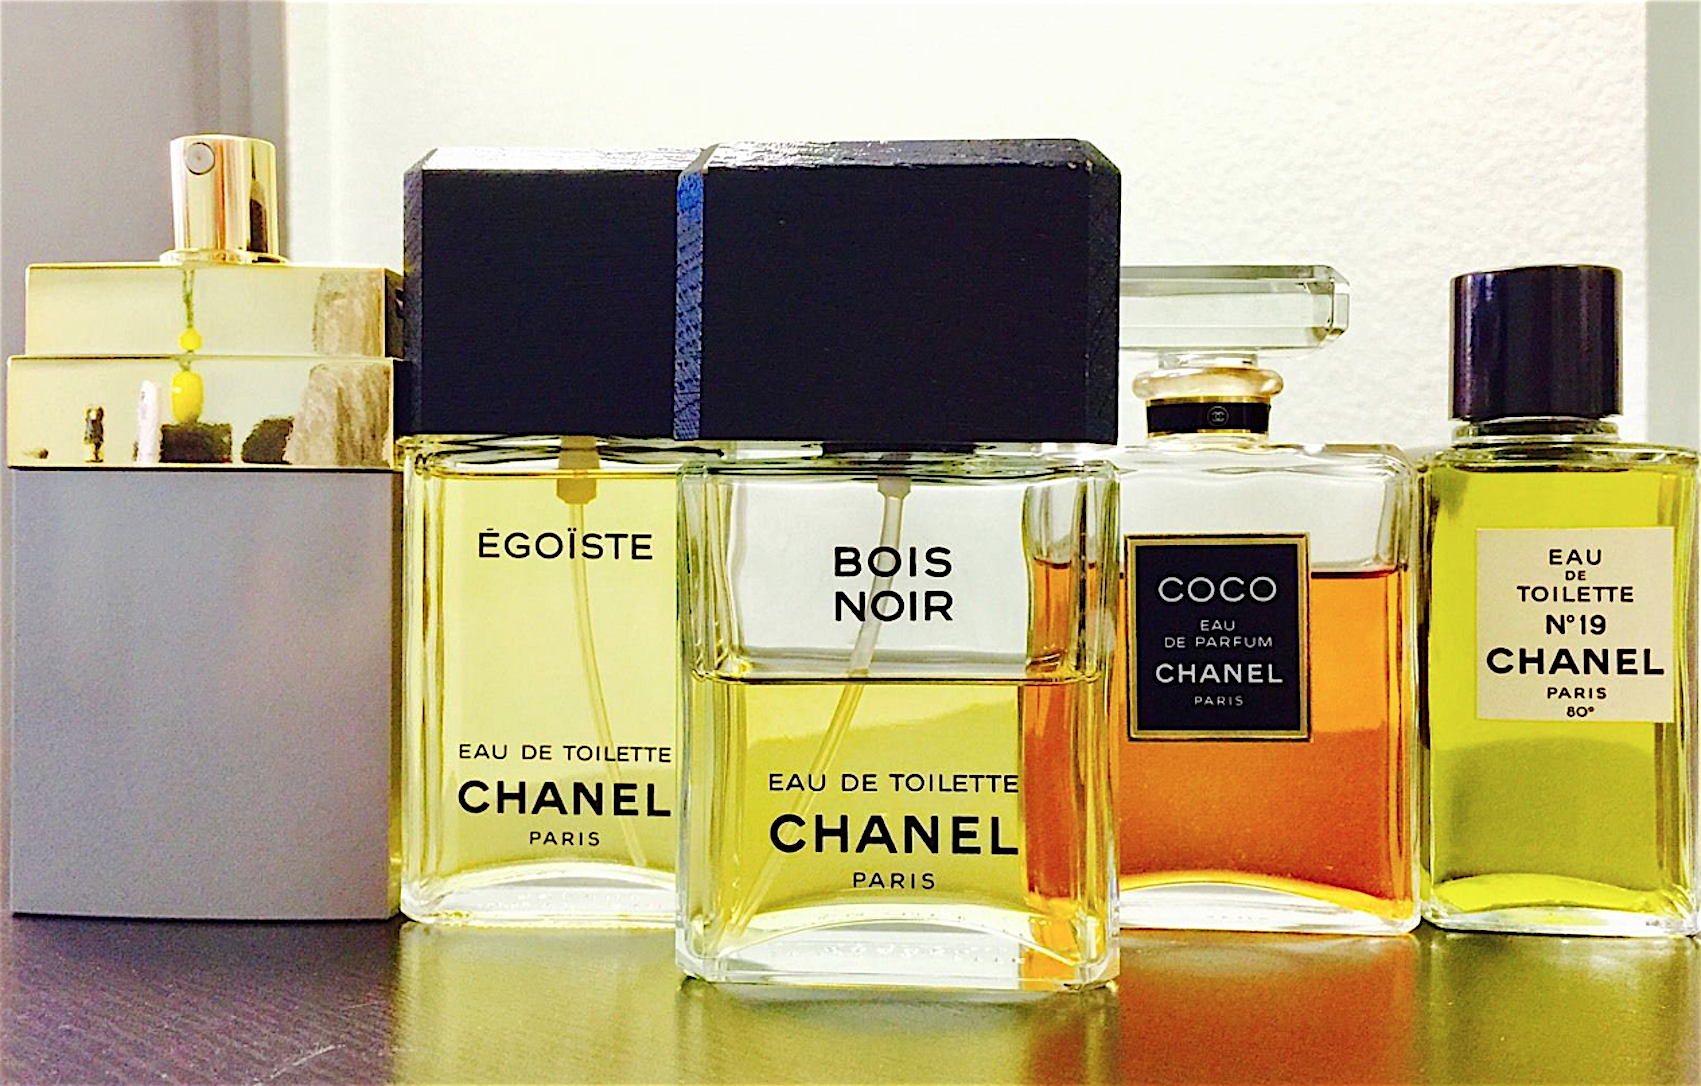 Eogiste Chanel